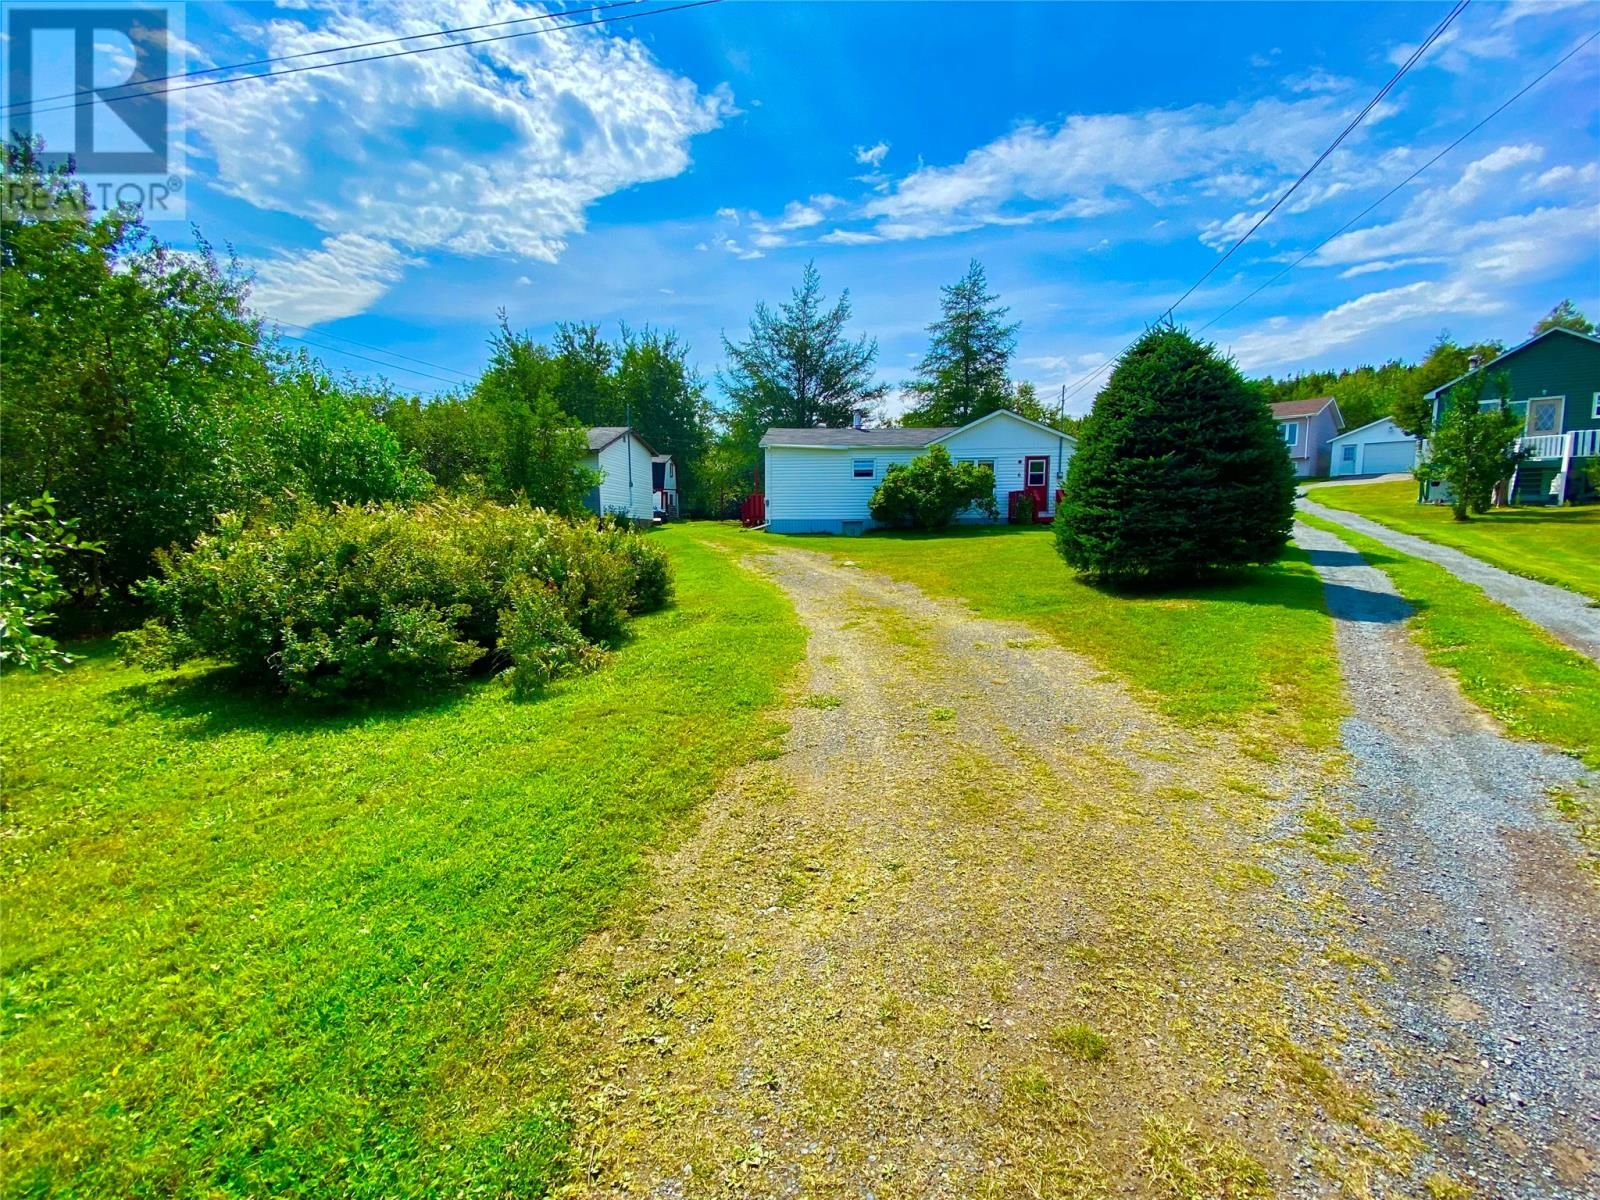 Main Photo: 6 Bayview Road in Campbellton: House for sale : MLS®# 1236332